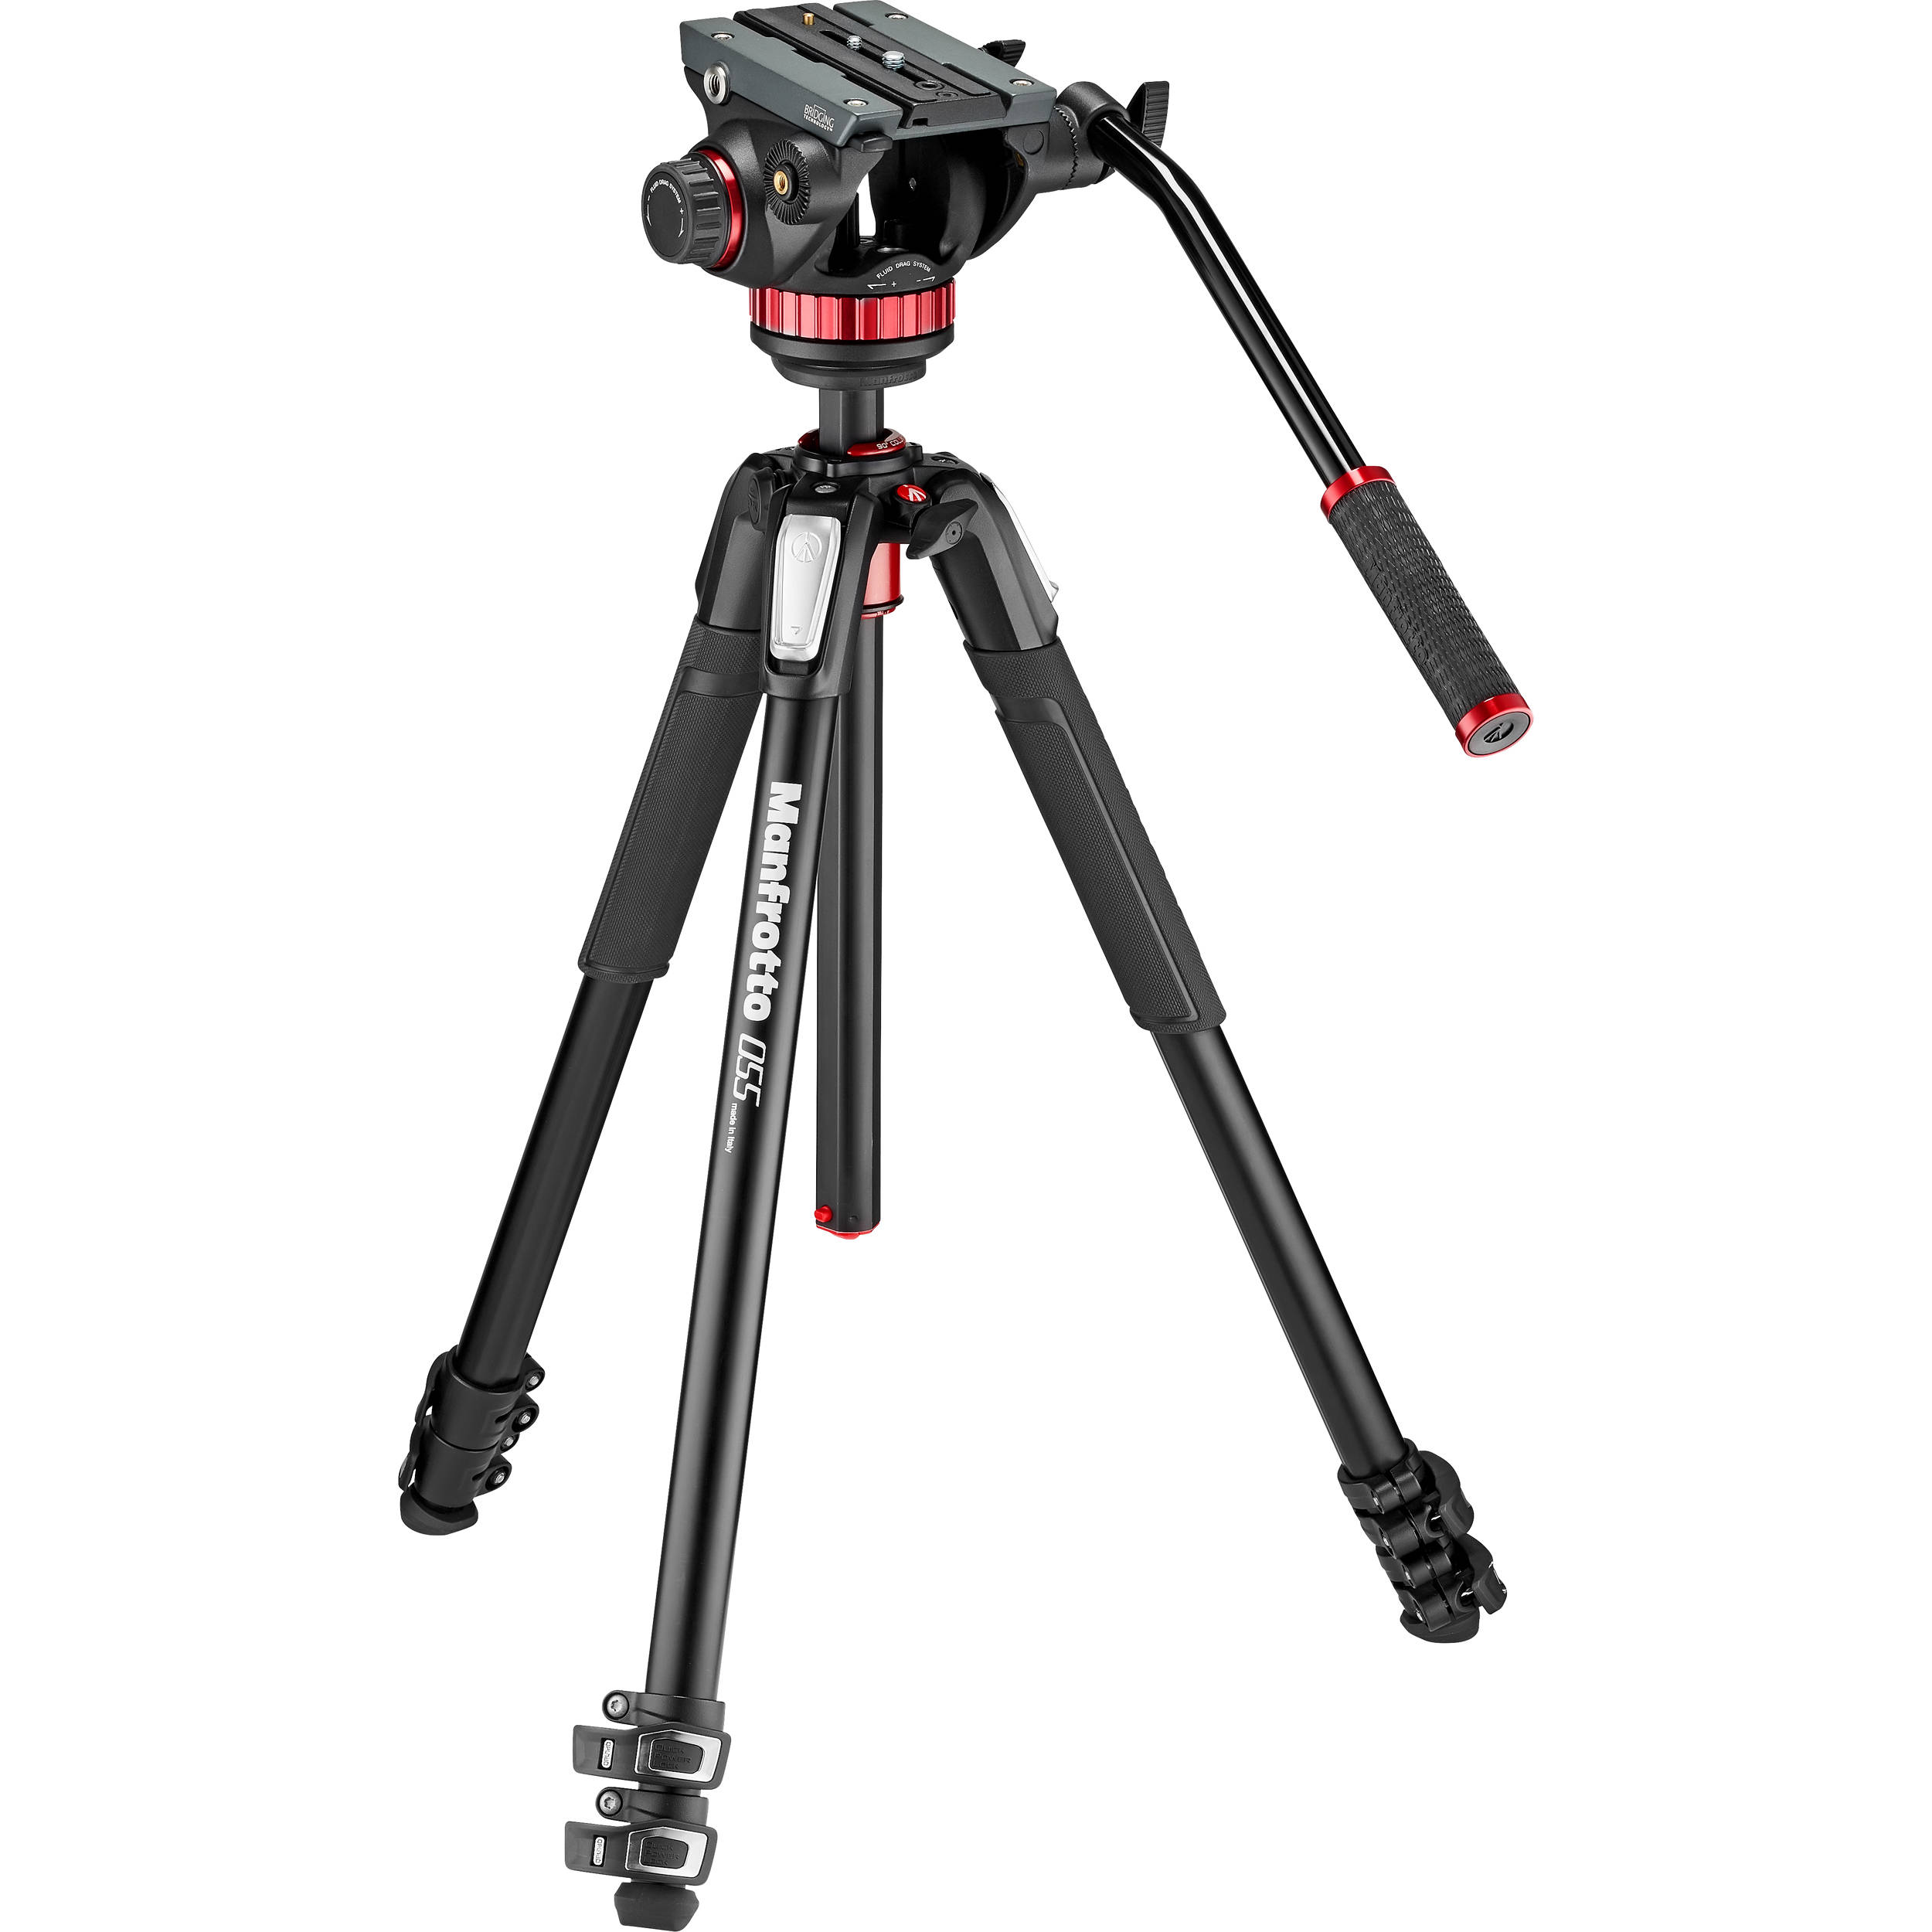 manfrotto_mvk502055xpro3_502hd_pro_video_head_1247856.jpg